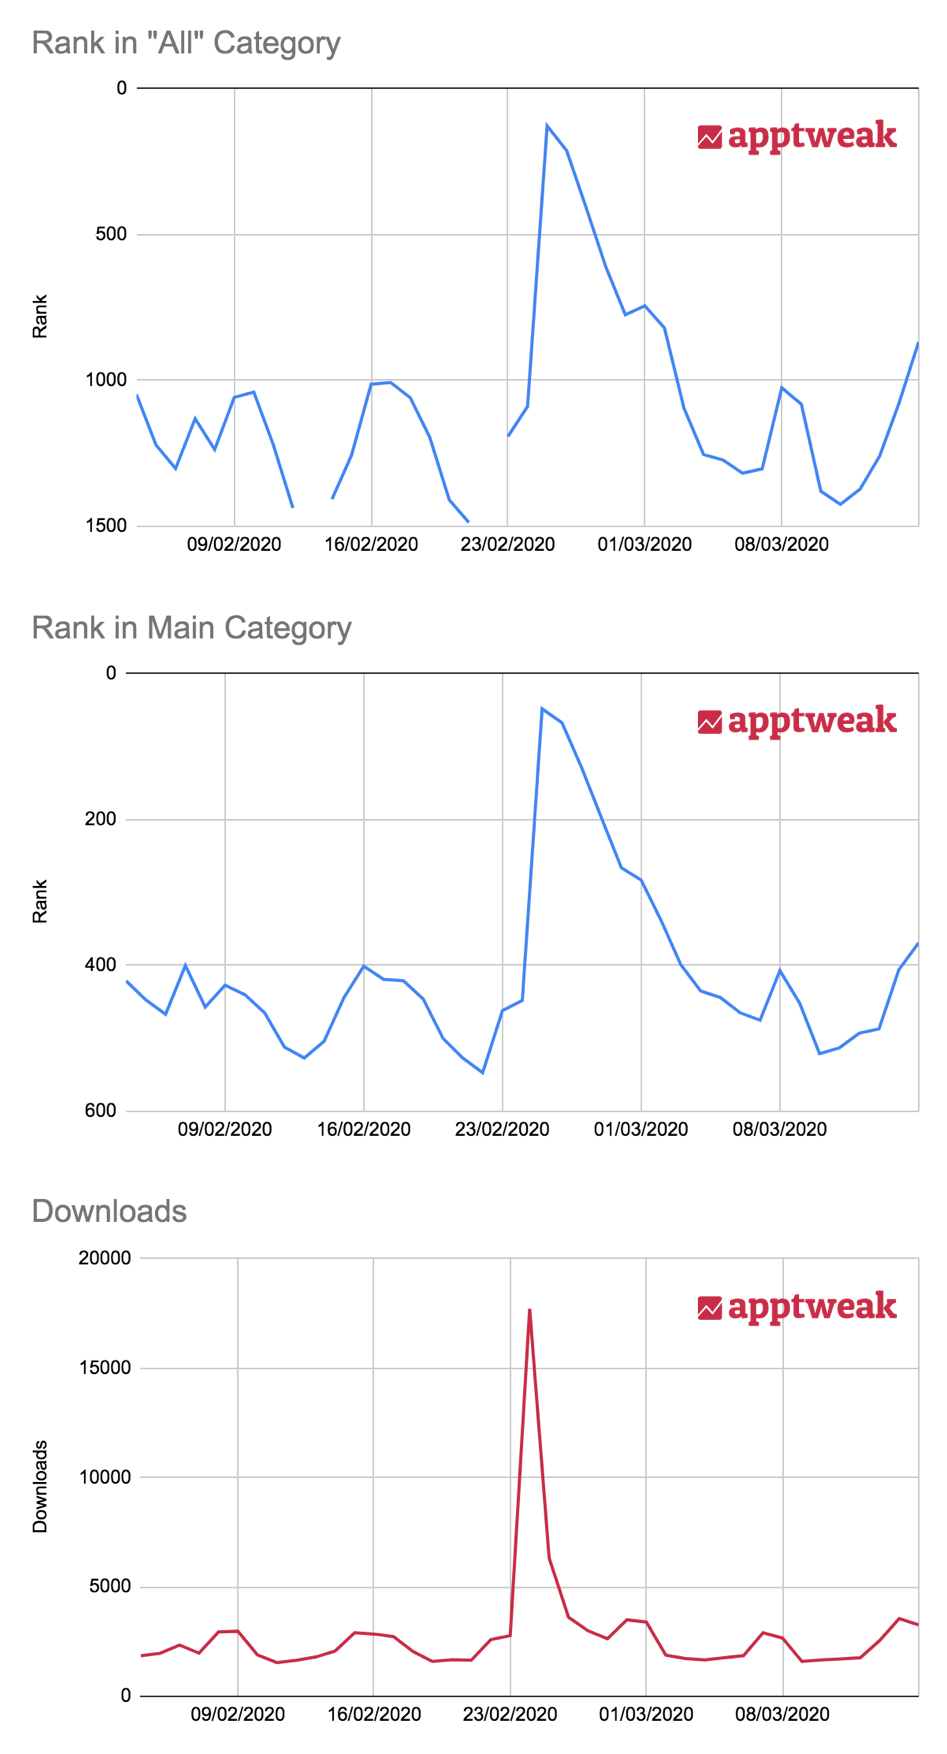 How Mobile App Downloads and Category Rank correlate